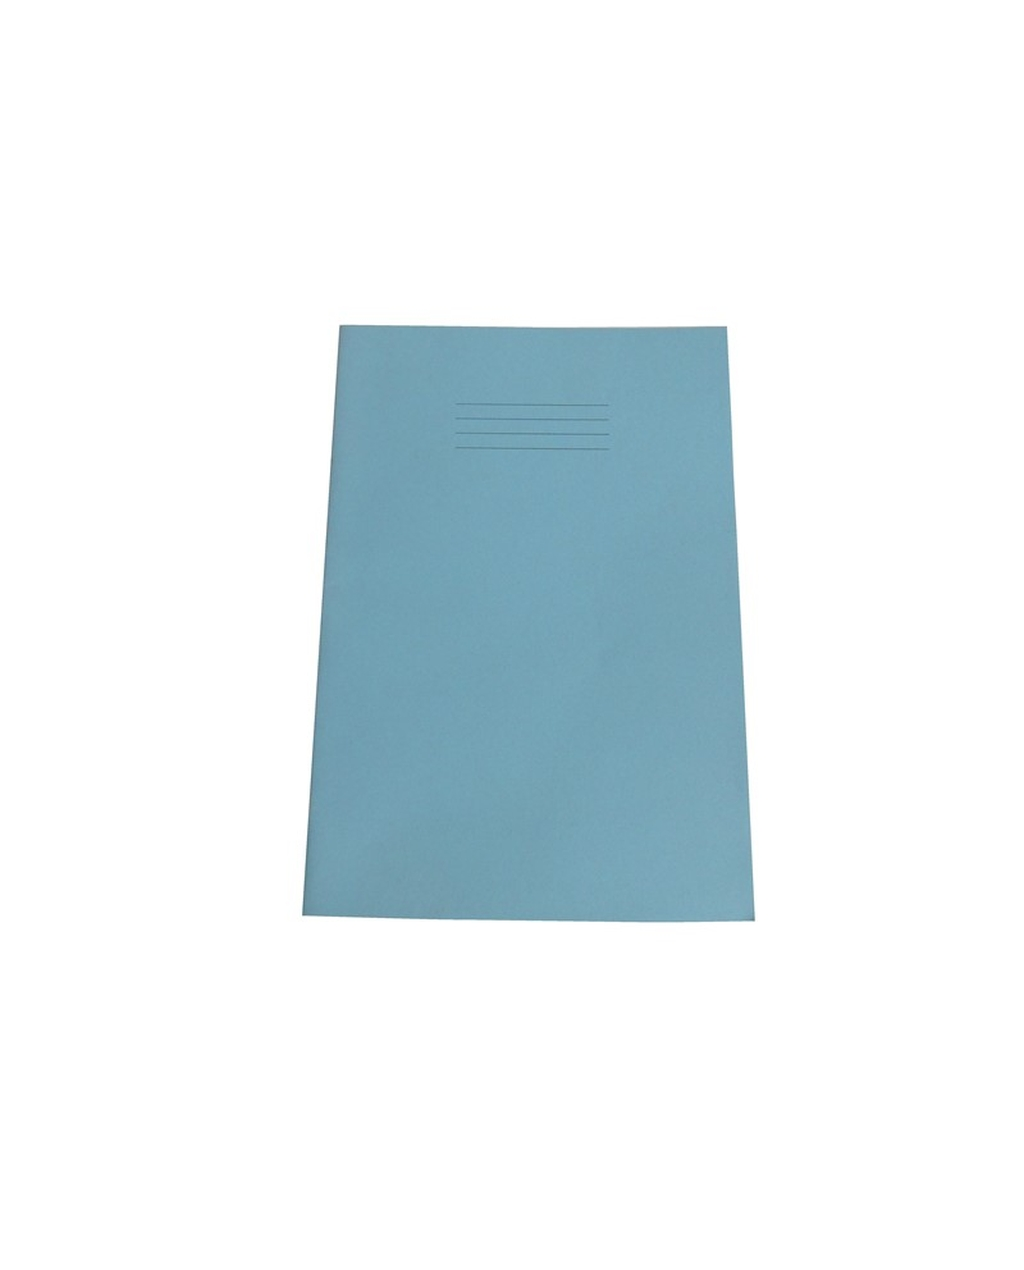 Exercise Book A4+ size (330 x 250mm) Light Blue Cover 7mm Squares 40 Pages